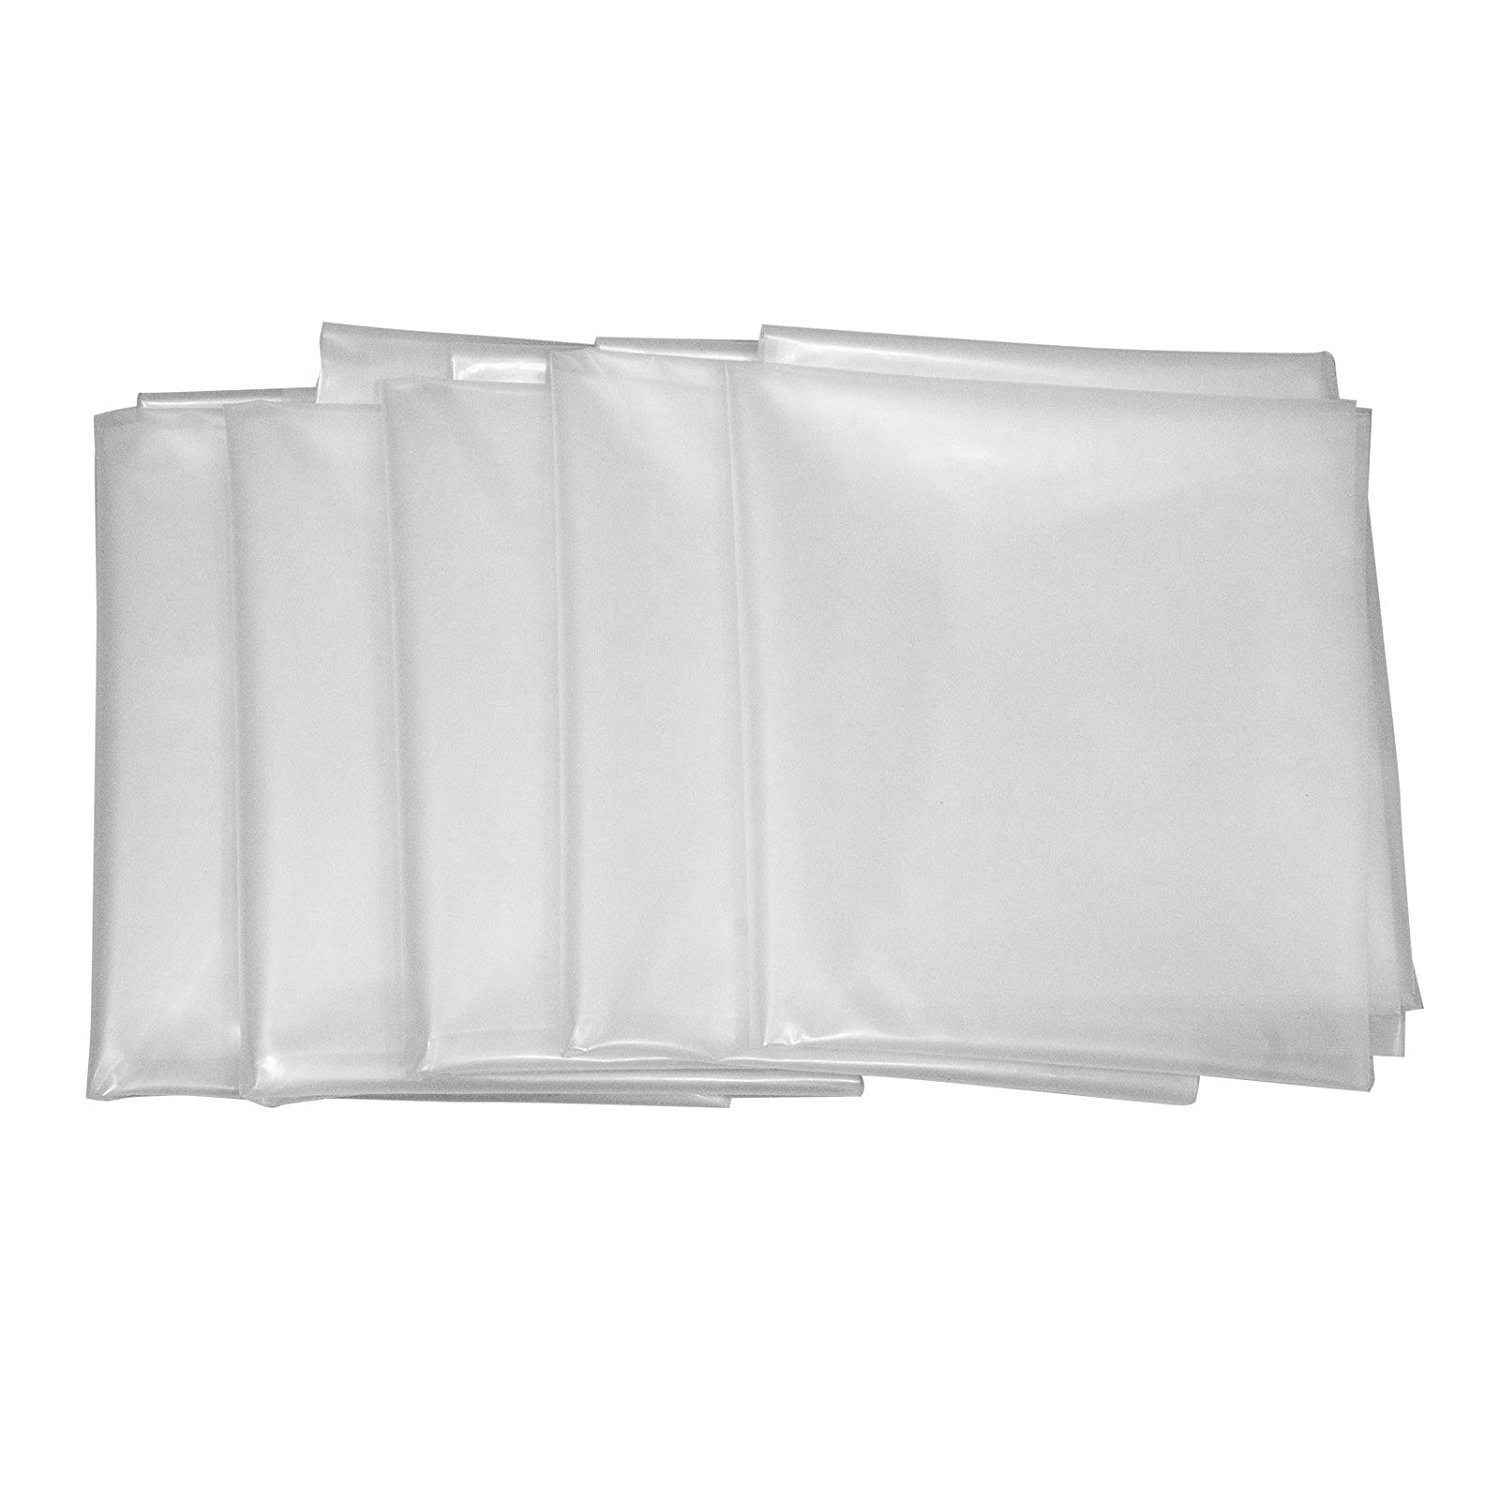 Peachtree 11501 Clear Plastic Dust Collector Bag 5 Pack 20'' Diameter